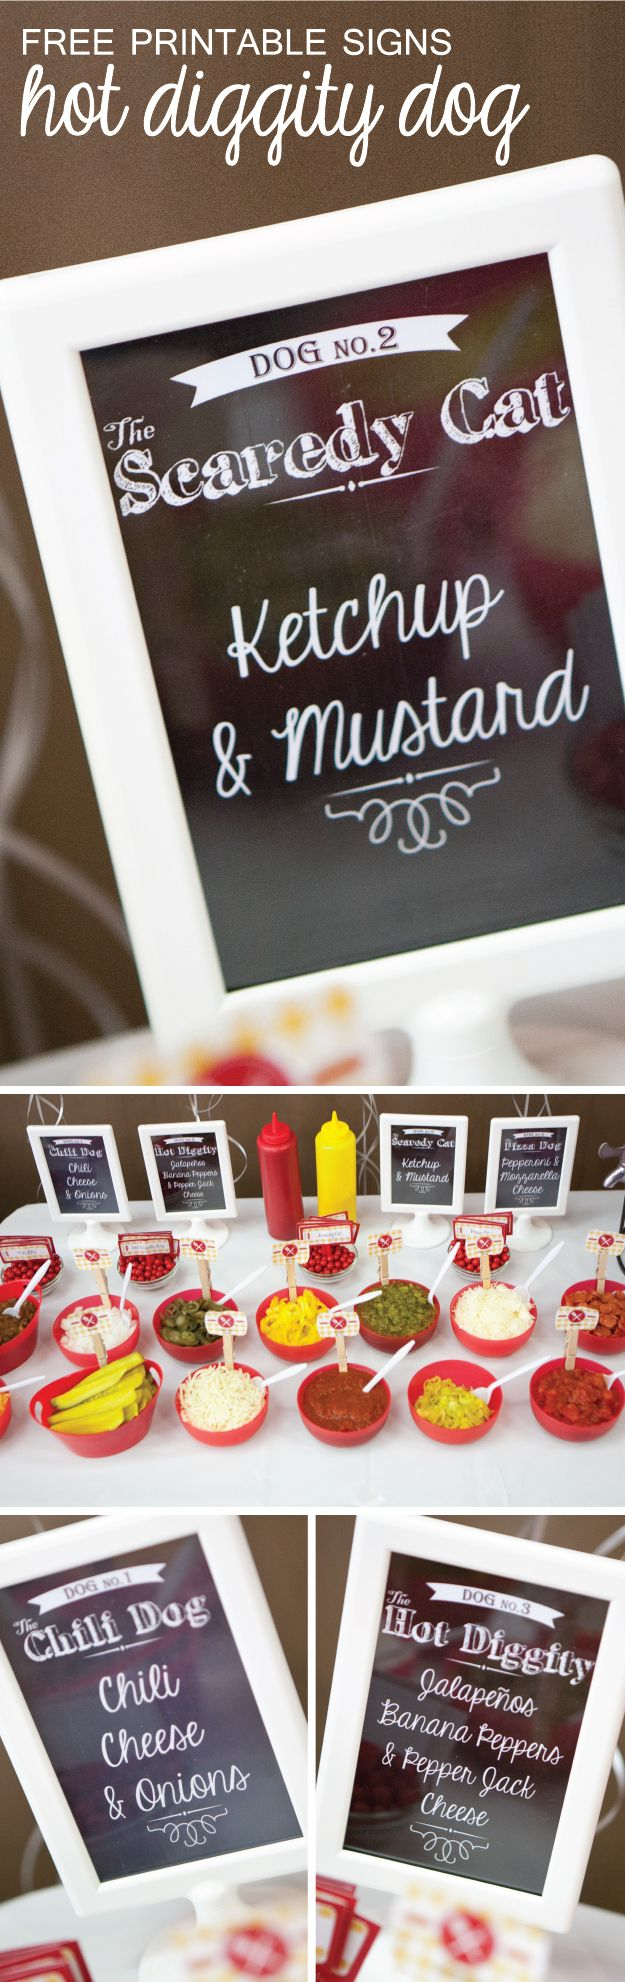 Hot Dog Party Supplies: Hot Diggity Dog Free Printable Signs #BigDot #HappyDot